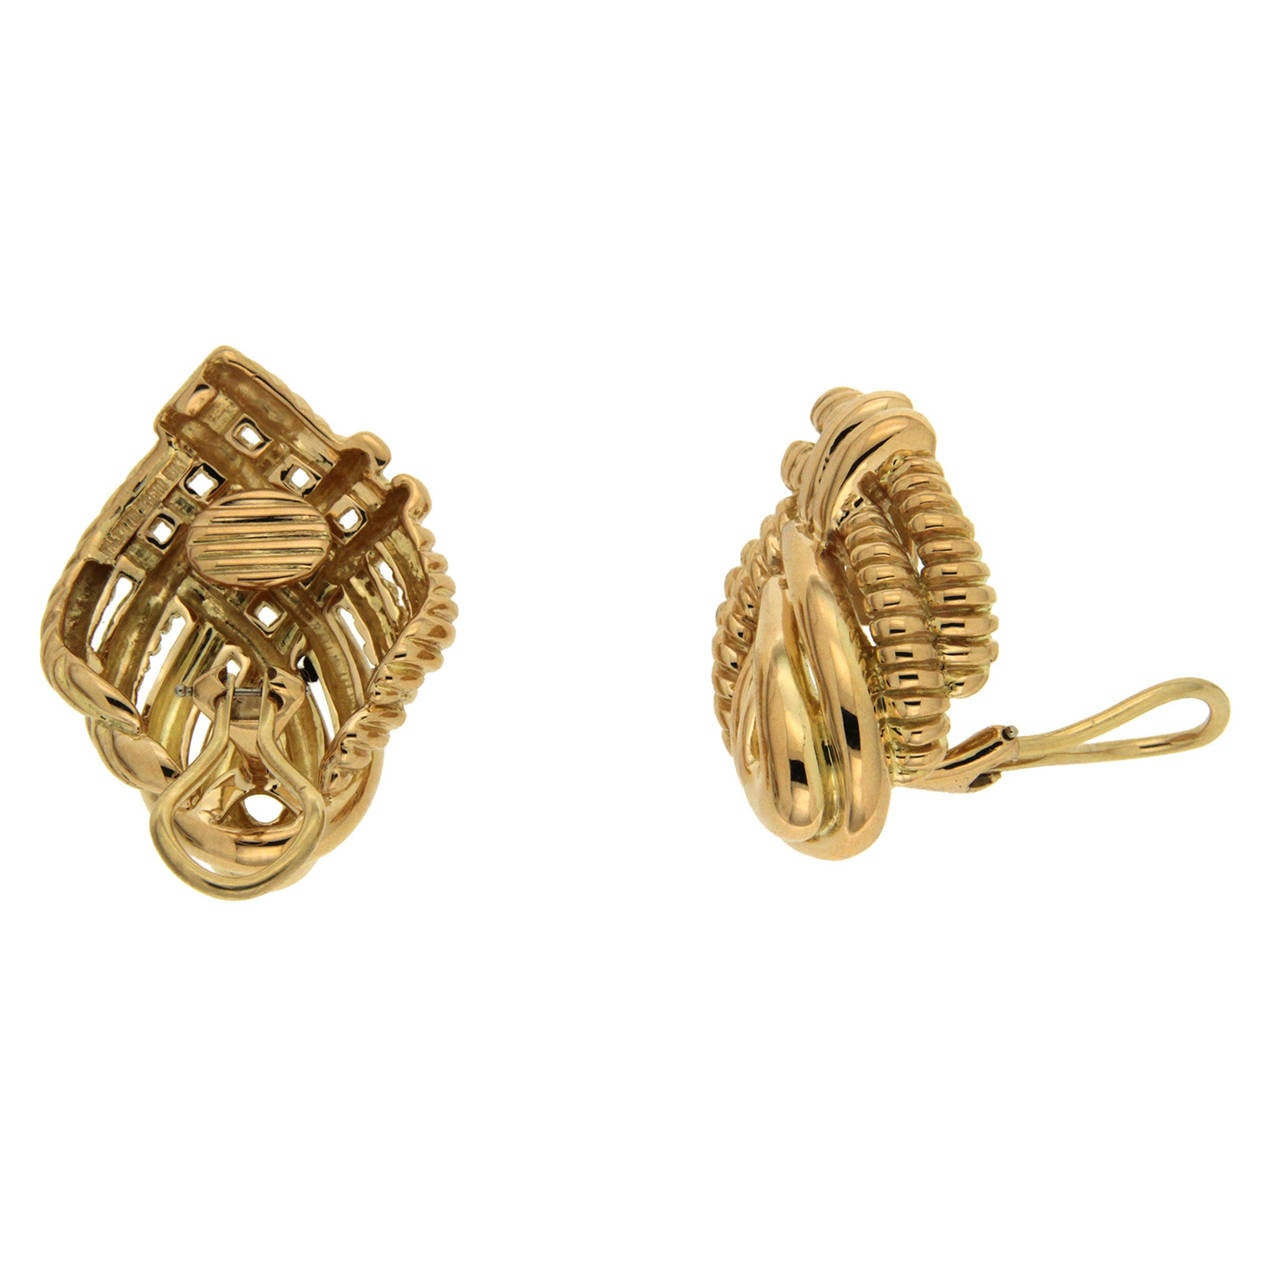 Four lines of gold curve, overlap and twist to create these stunning earrings. Its smooth polish and rope-like texture offer multiple ways to enjoy light playing off their surfaces. The earrings get their warm hues from 18k yellow gold. Clip-backs